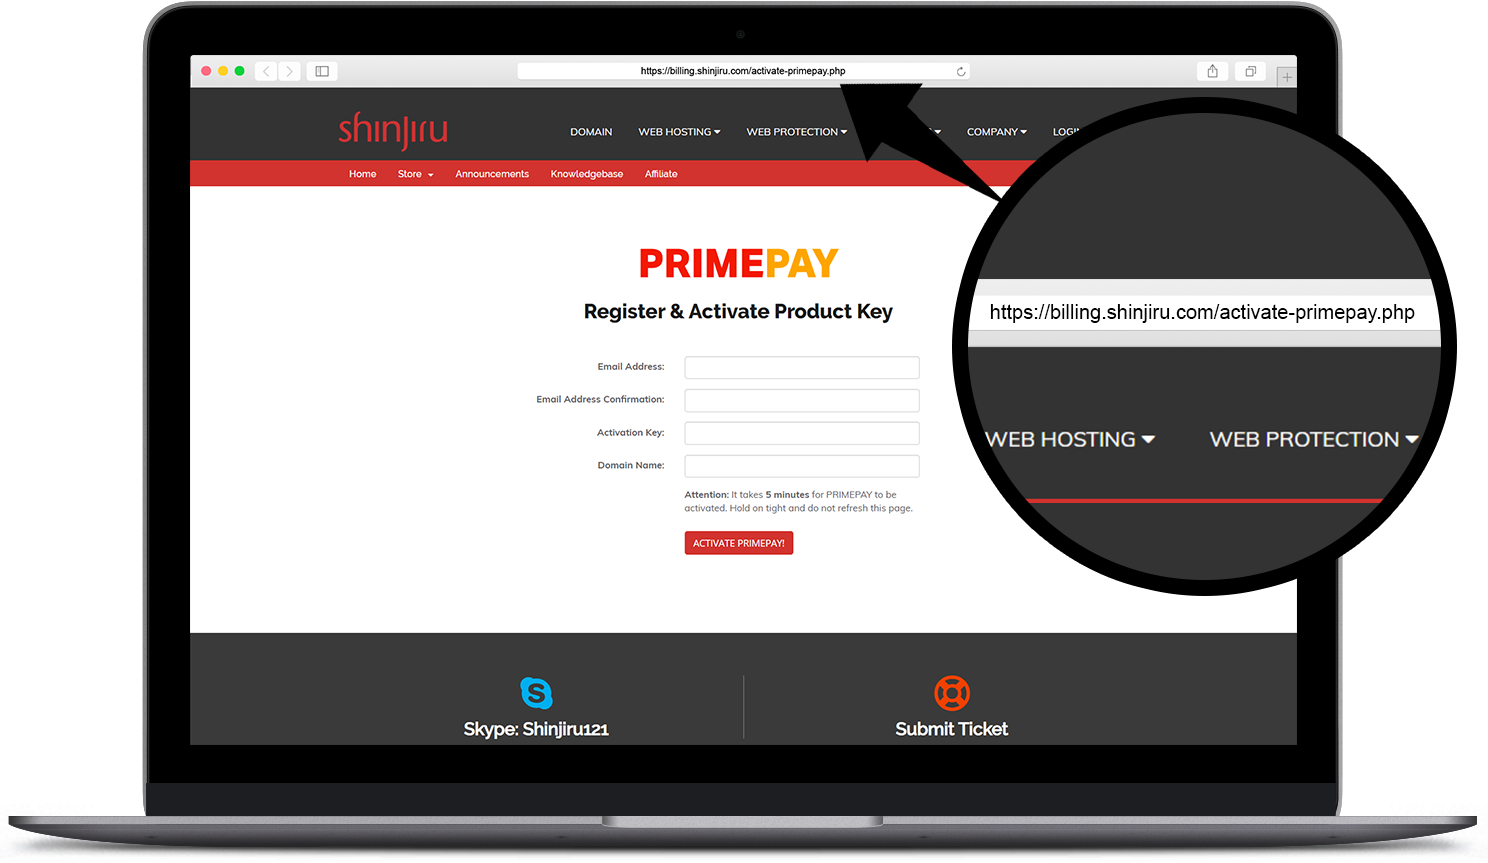 Go to this https://billing.shinjiru.com/activate-primepay.php